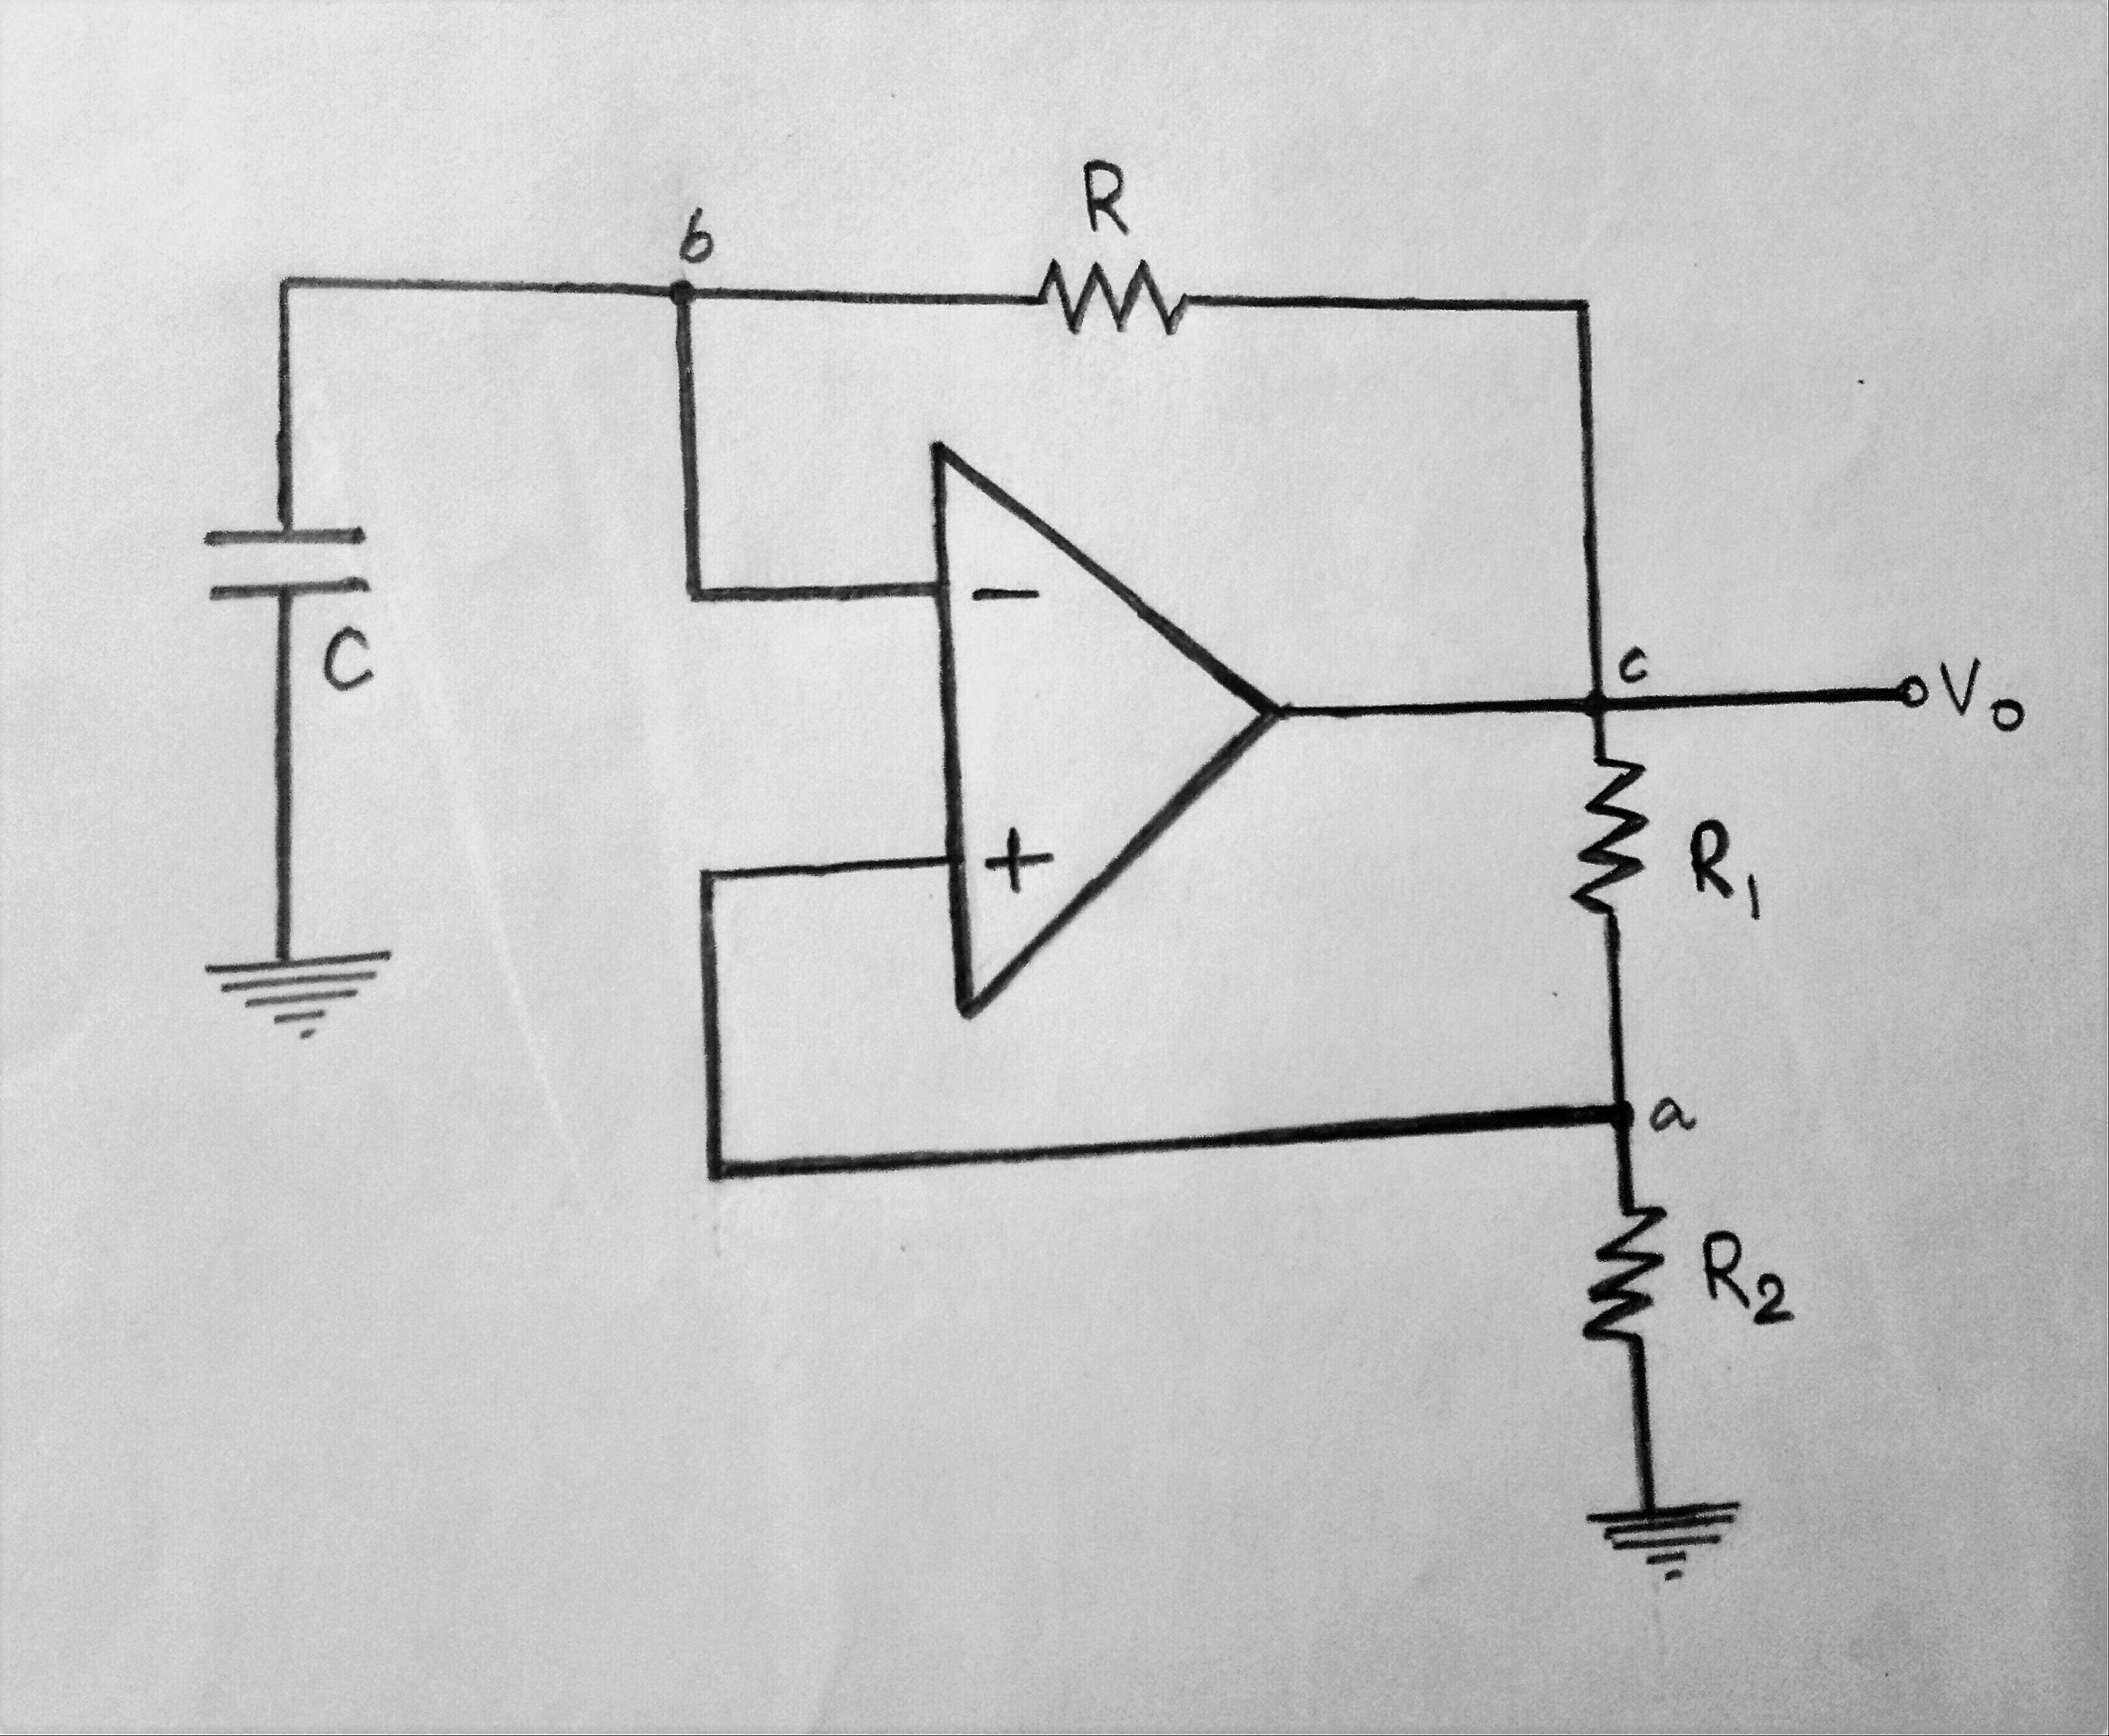 Opamp Multivibrator Or Astable Sawtooth Wave Generator Circuit Using Ujt Relaxation Oscillator 555 Timer